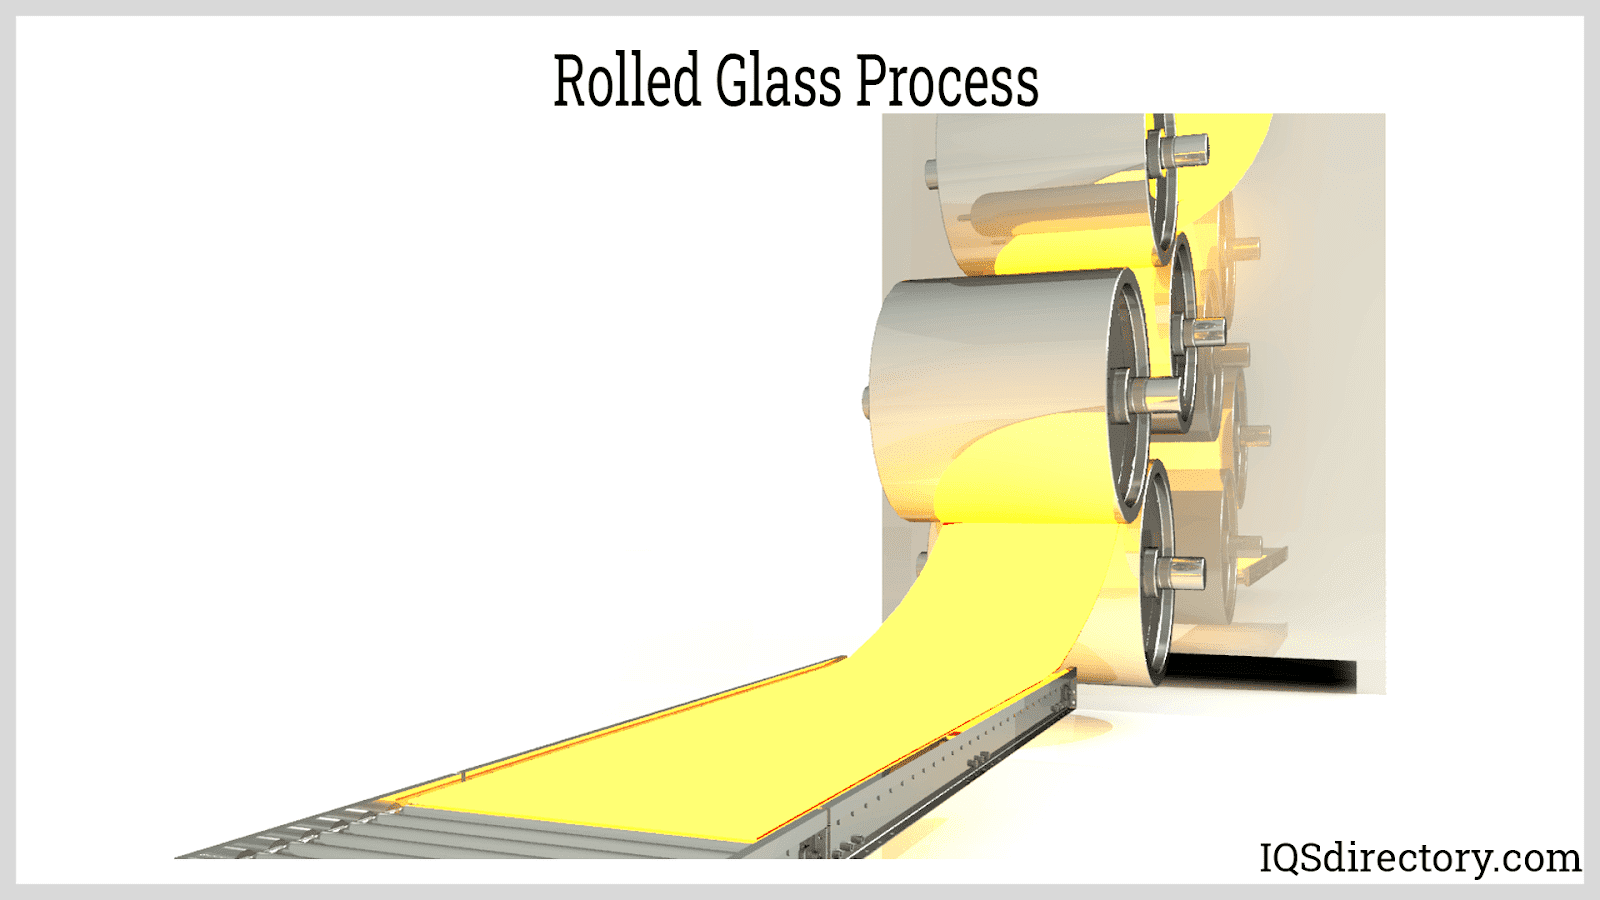 Rolled Glass Process